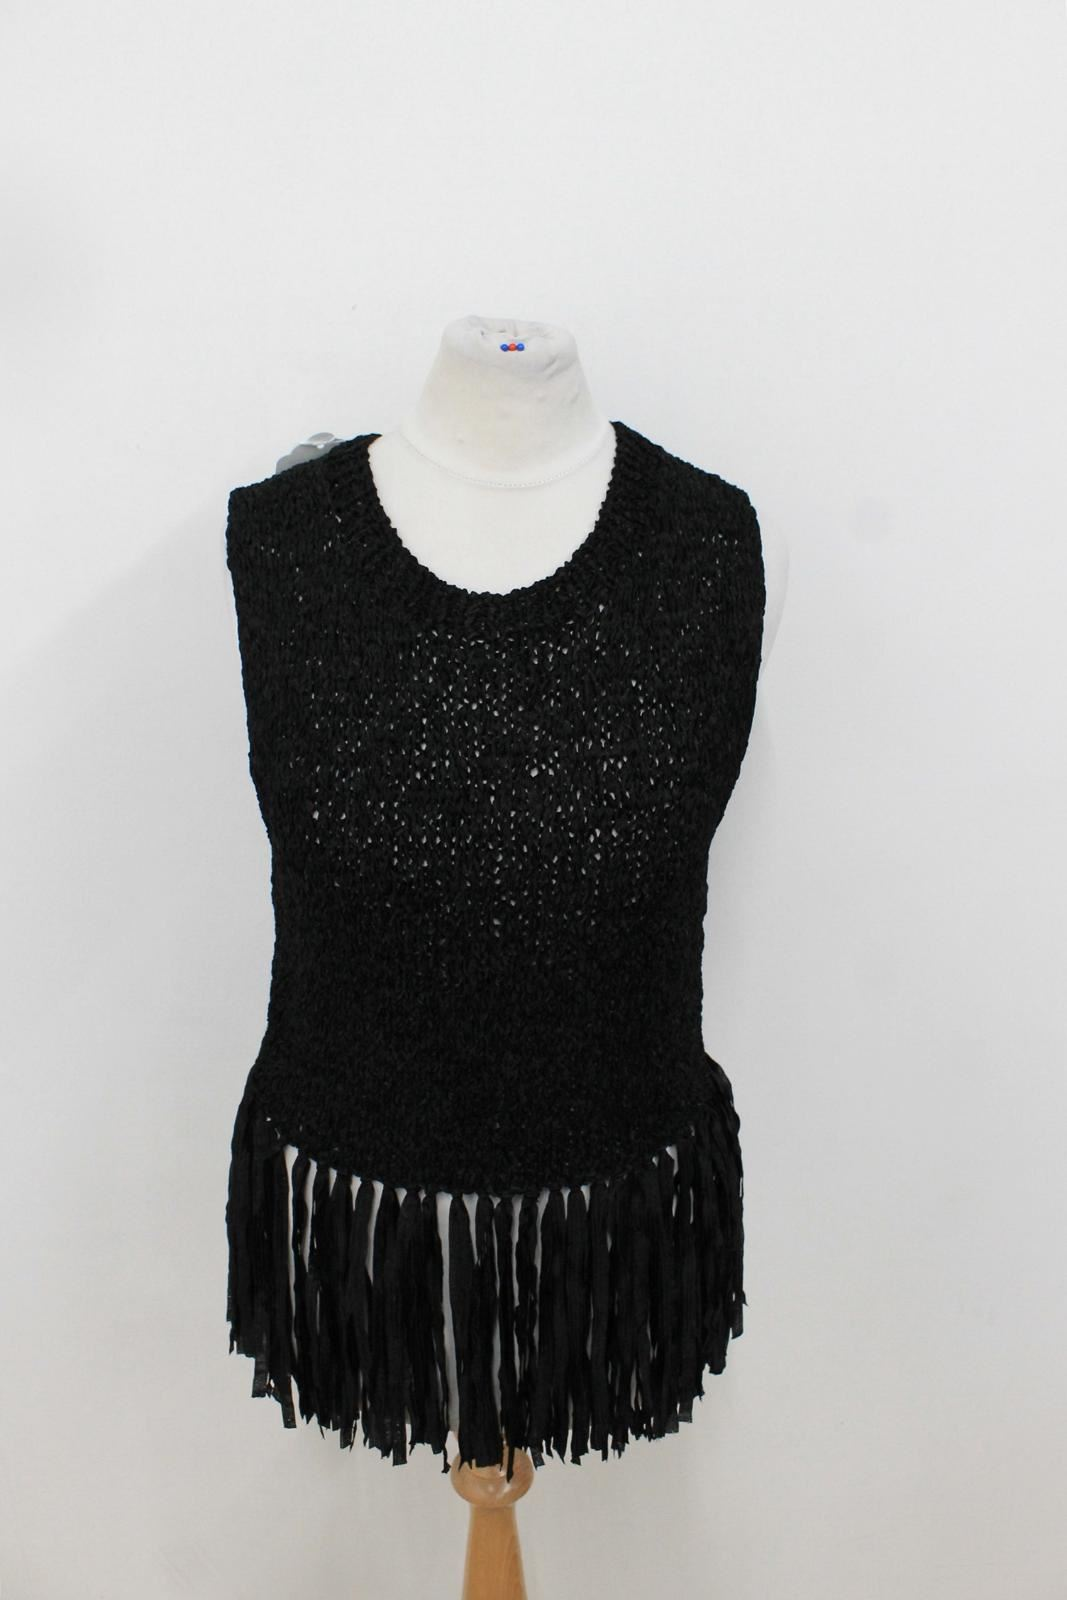 Neck Sleeveless Fringed Top Knitted Size Hem Xs c A Ladies l Black Tassel Crew qaZXH0